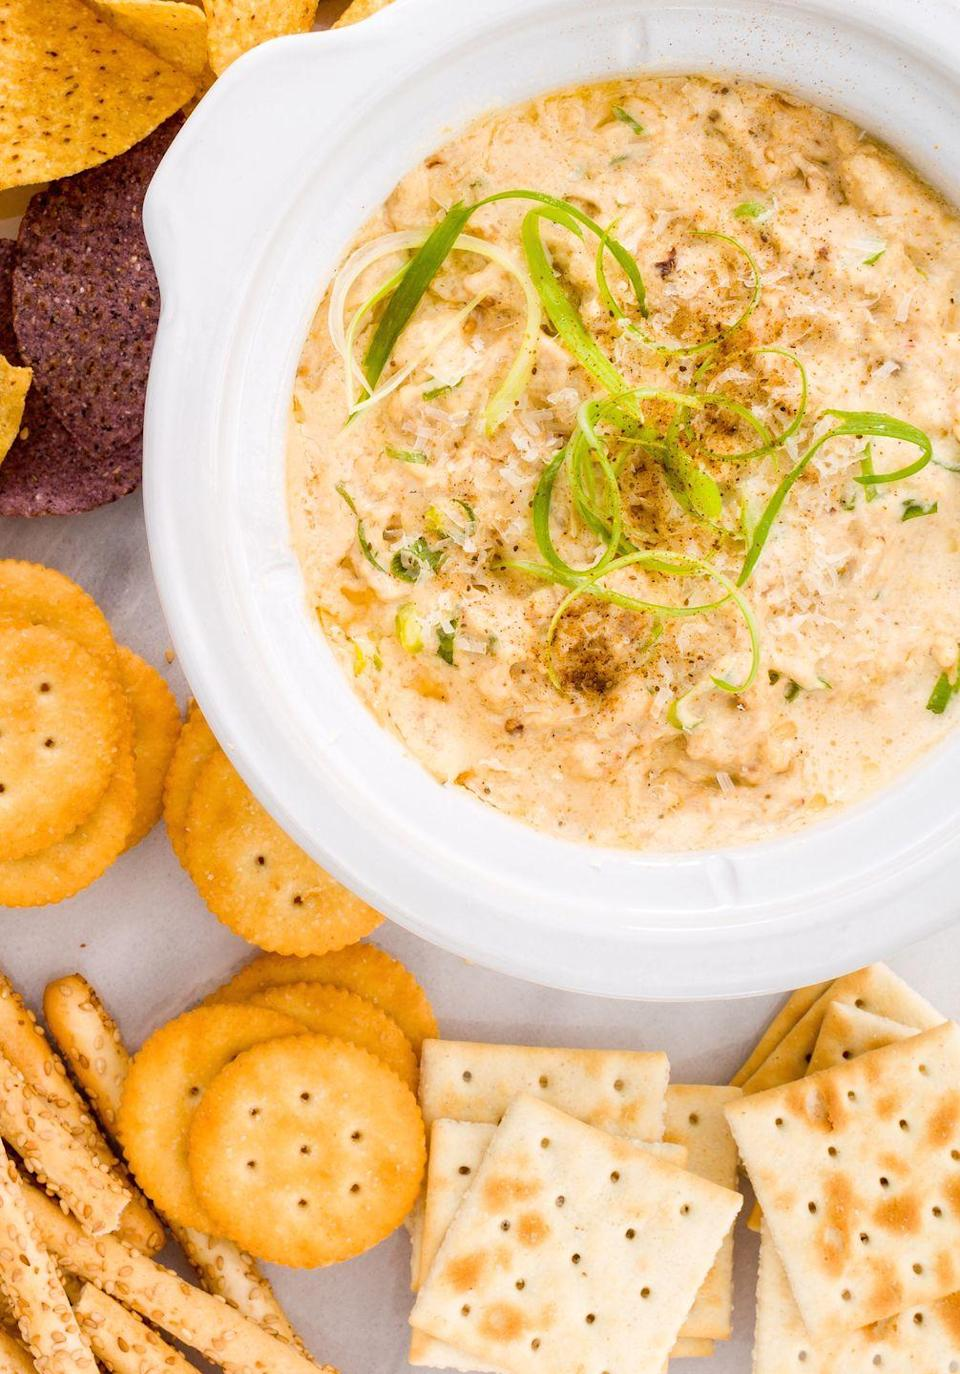 "<p>Just swap out the Ritz Crackers for serving with this <a href=""https://www.delish.com/cooking/recipe-ideas/a25633559/keto-crackers-recipe/"" rel=""nofollow noopener"" target=""_blank"" data-ylk=""slk:Keto rendition"" class=""link rapid-noclick-resp"">Keto rendition</a> and you're good to go.</p><p>Get the recipe from <a href=""https://www.delish.com/cooking/recipe-ideas/recipes/a44678/slow-cooker-crab-dip-recipe/"" rel=""nofollow noopener"" target=""_blank"" data-ylk=""slk:Delish"" class=""link rapid-noclick-resp"">Delish</a>. </p>"